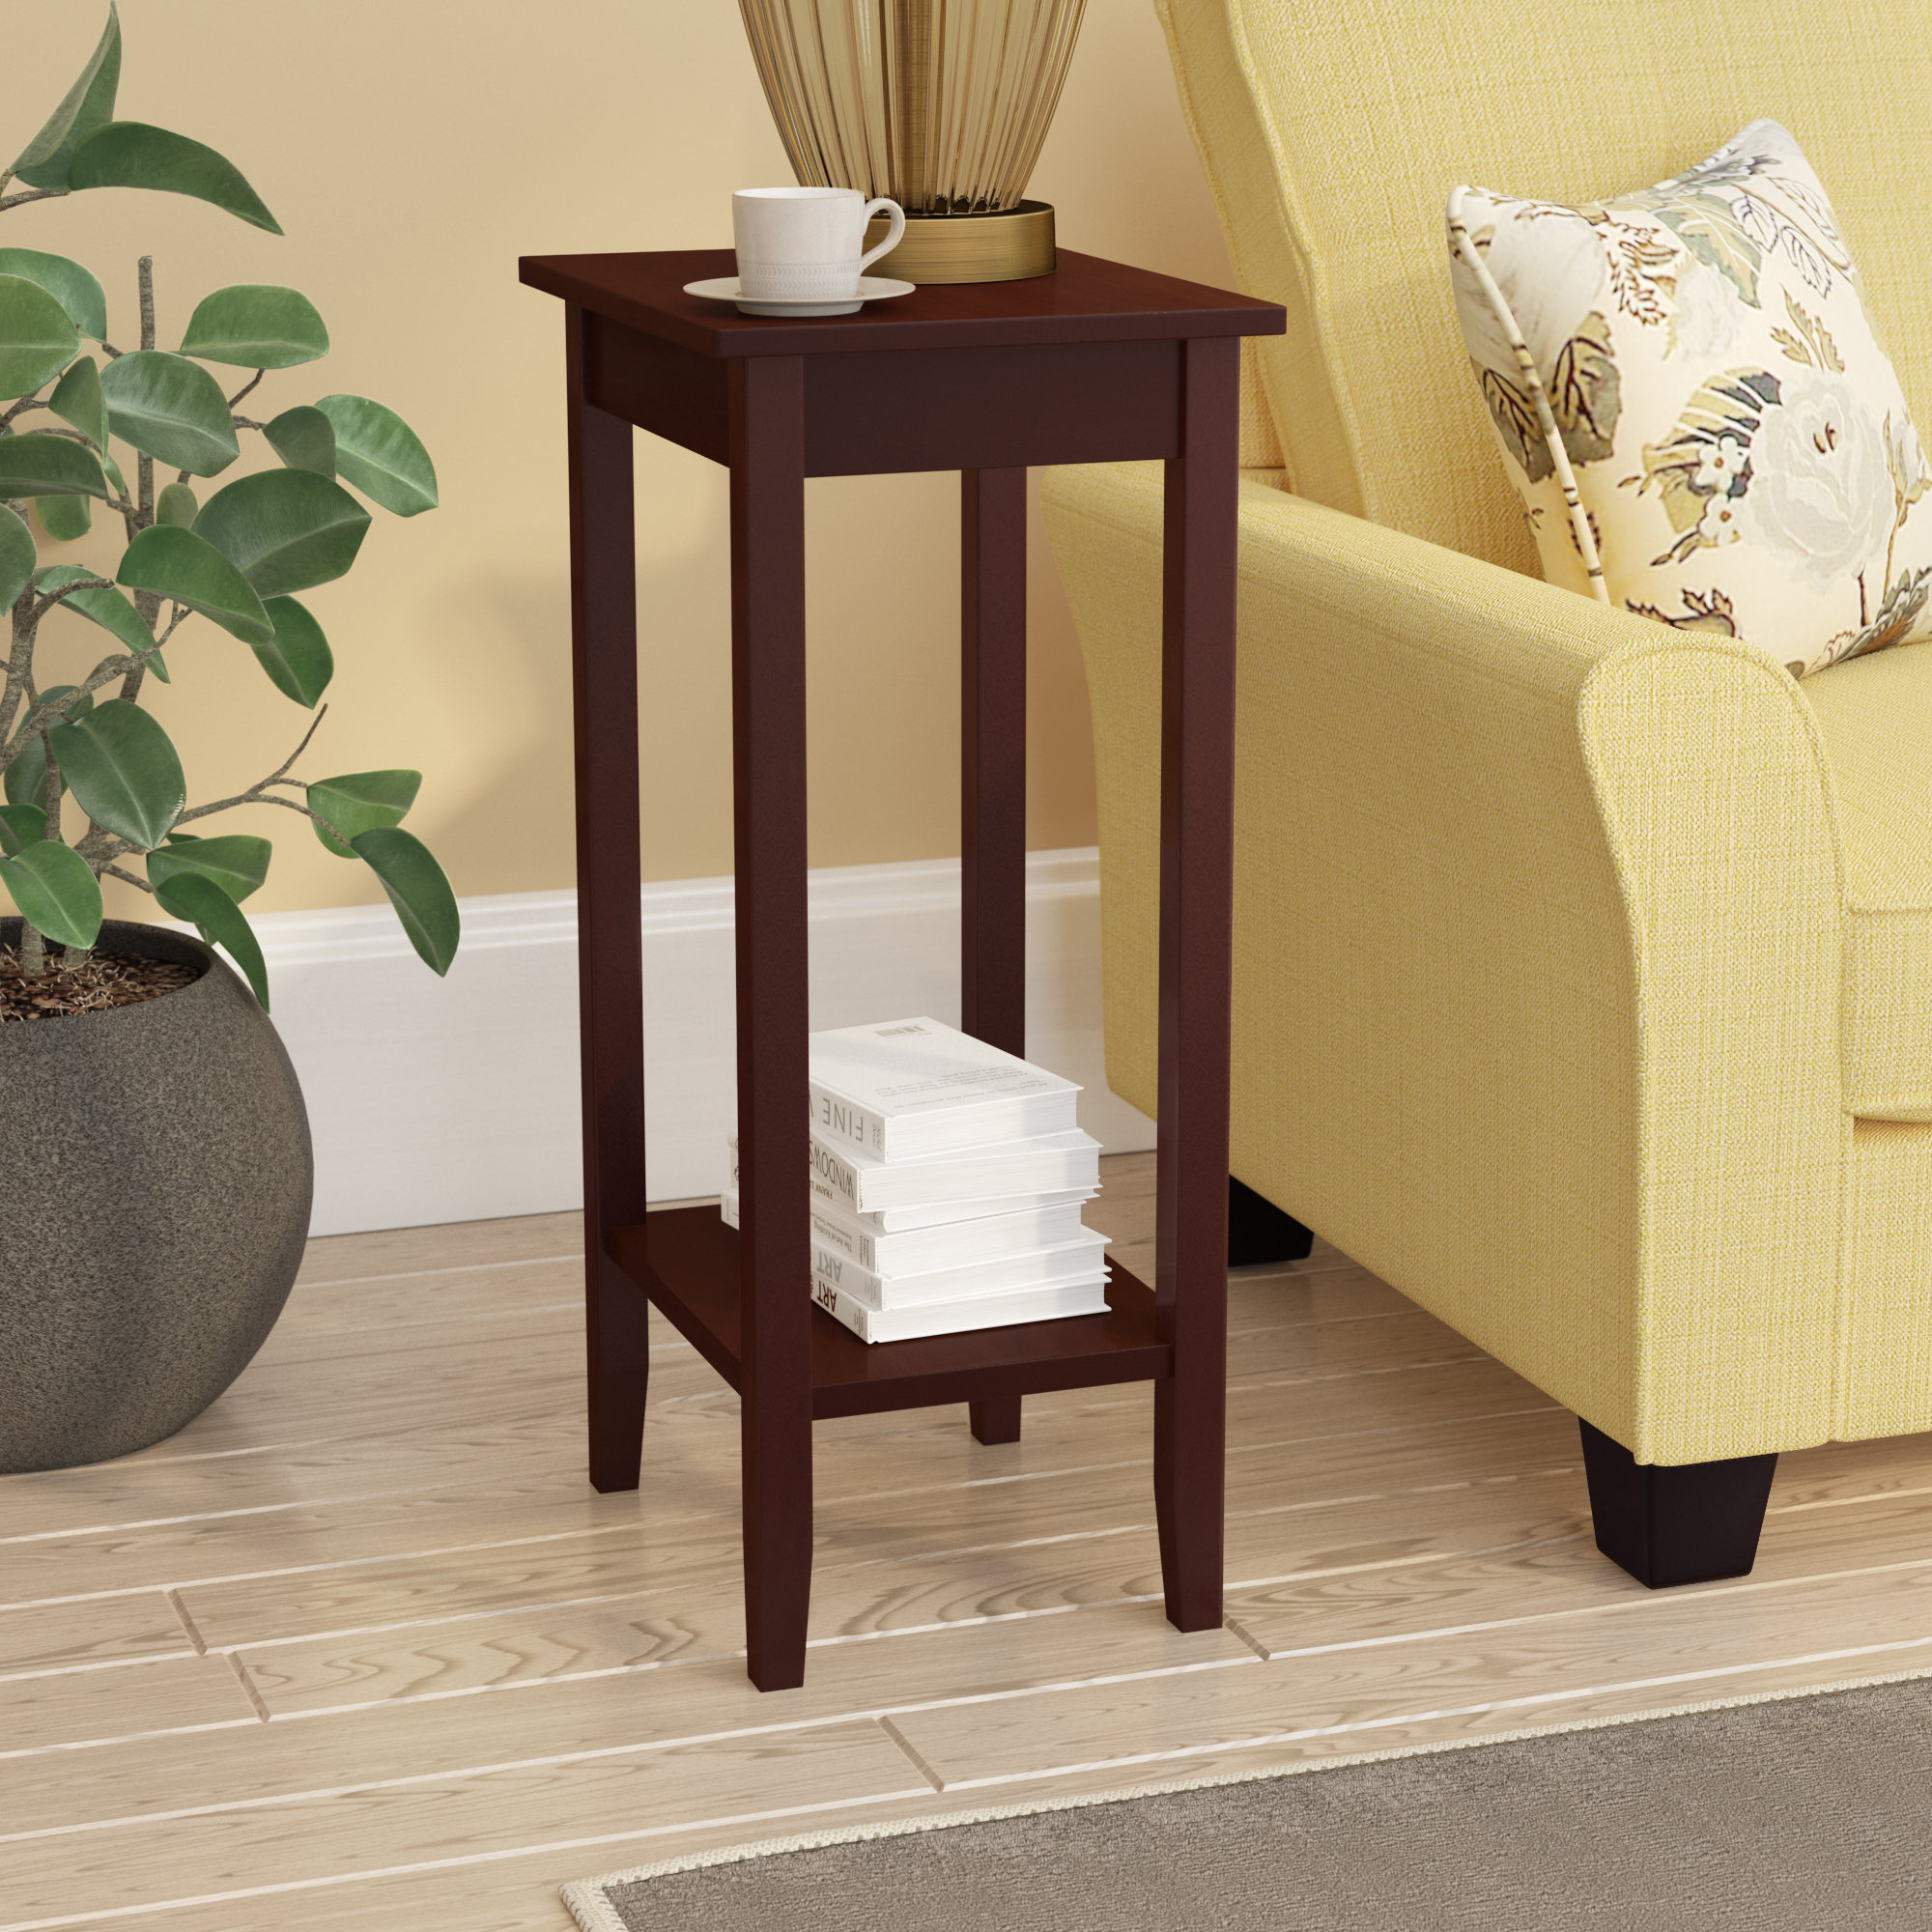 tall skinny accent table noble rosewood end long narrow tables quickview solid wood console modern nightstands shelf pier lamps lamp base one dining bench round and iron coffee